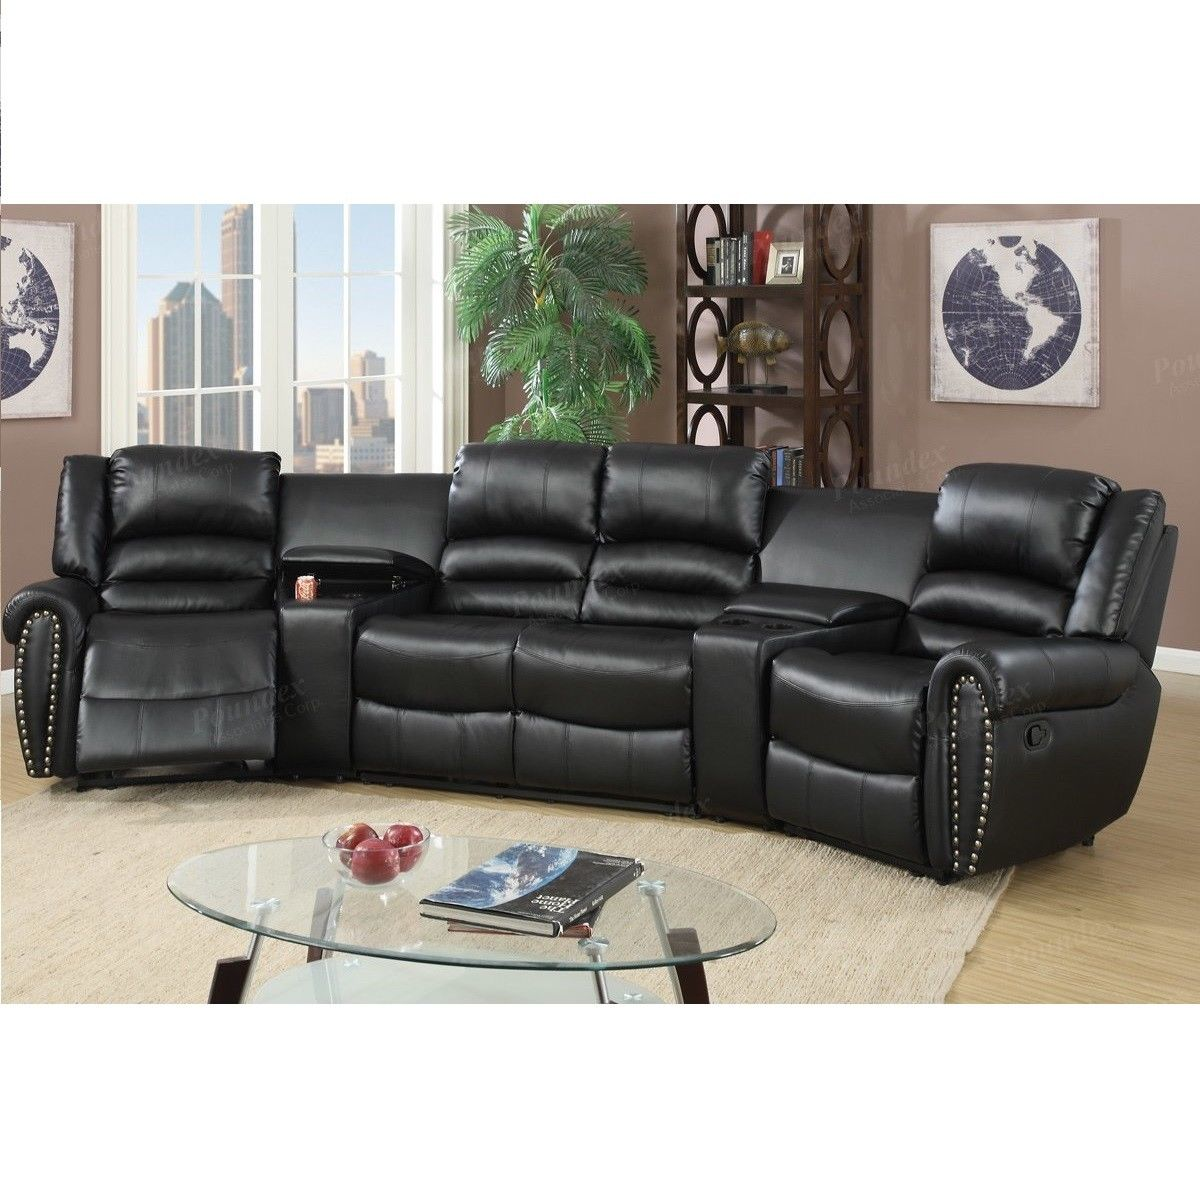 Black Bonded Leather Reclining Sofa Set Home Theater Sectional Sofa Set with Two Center Consoles